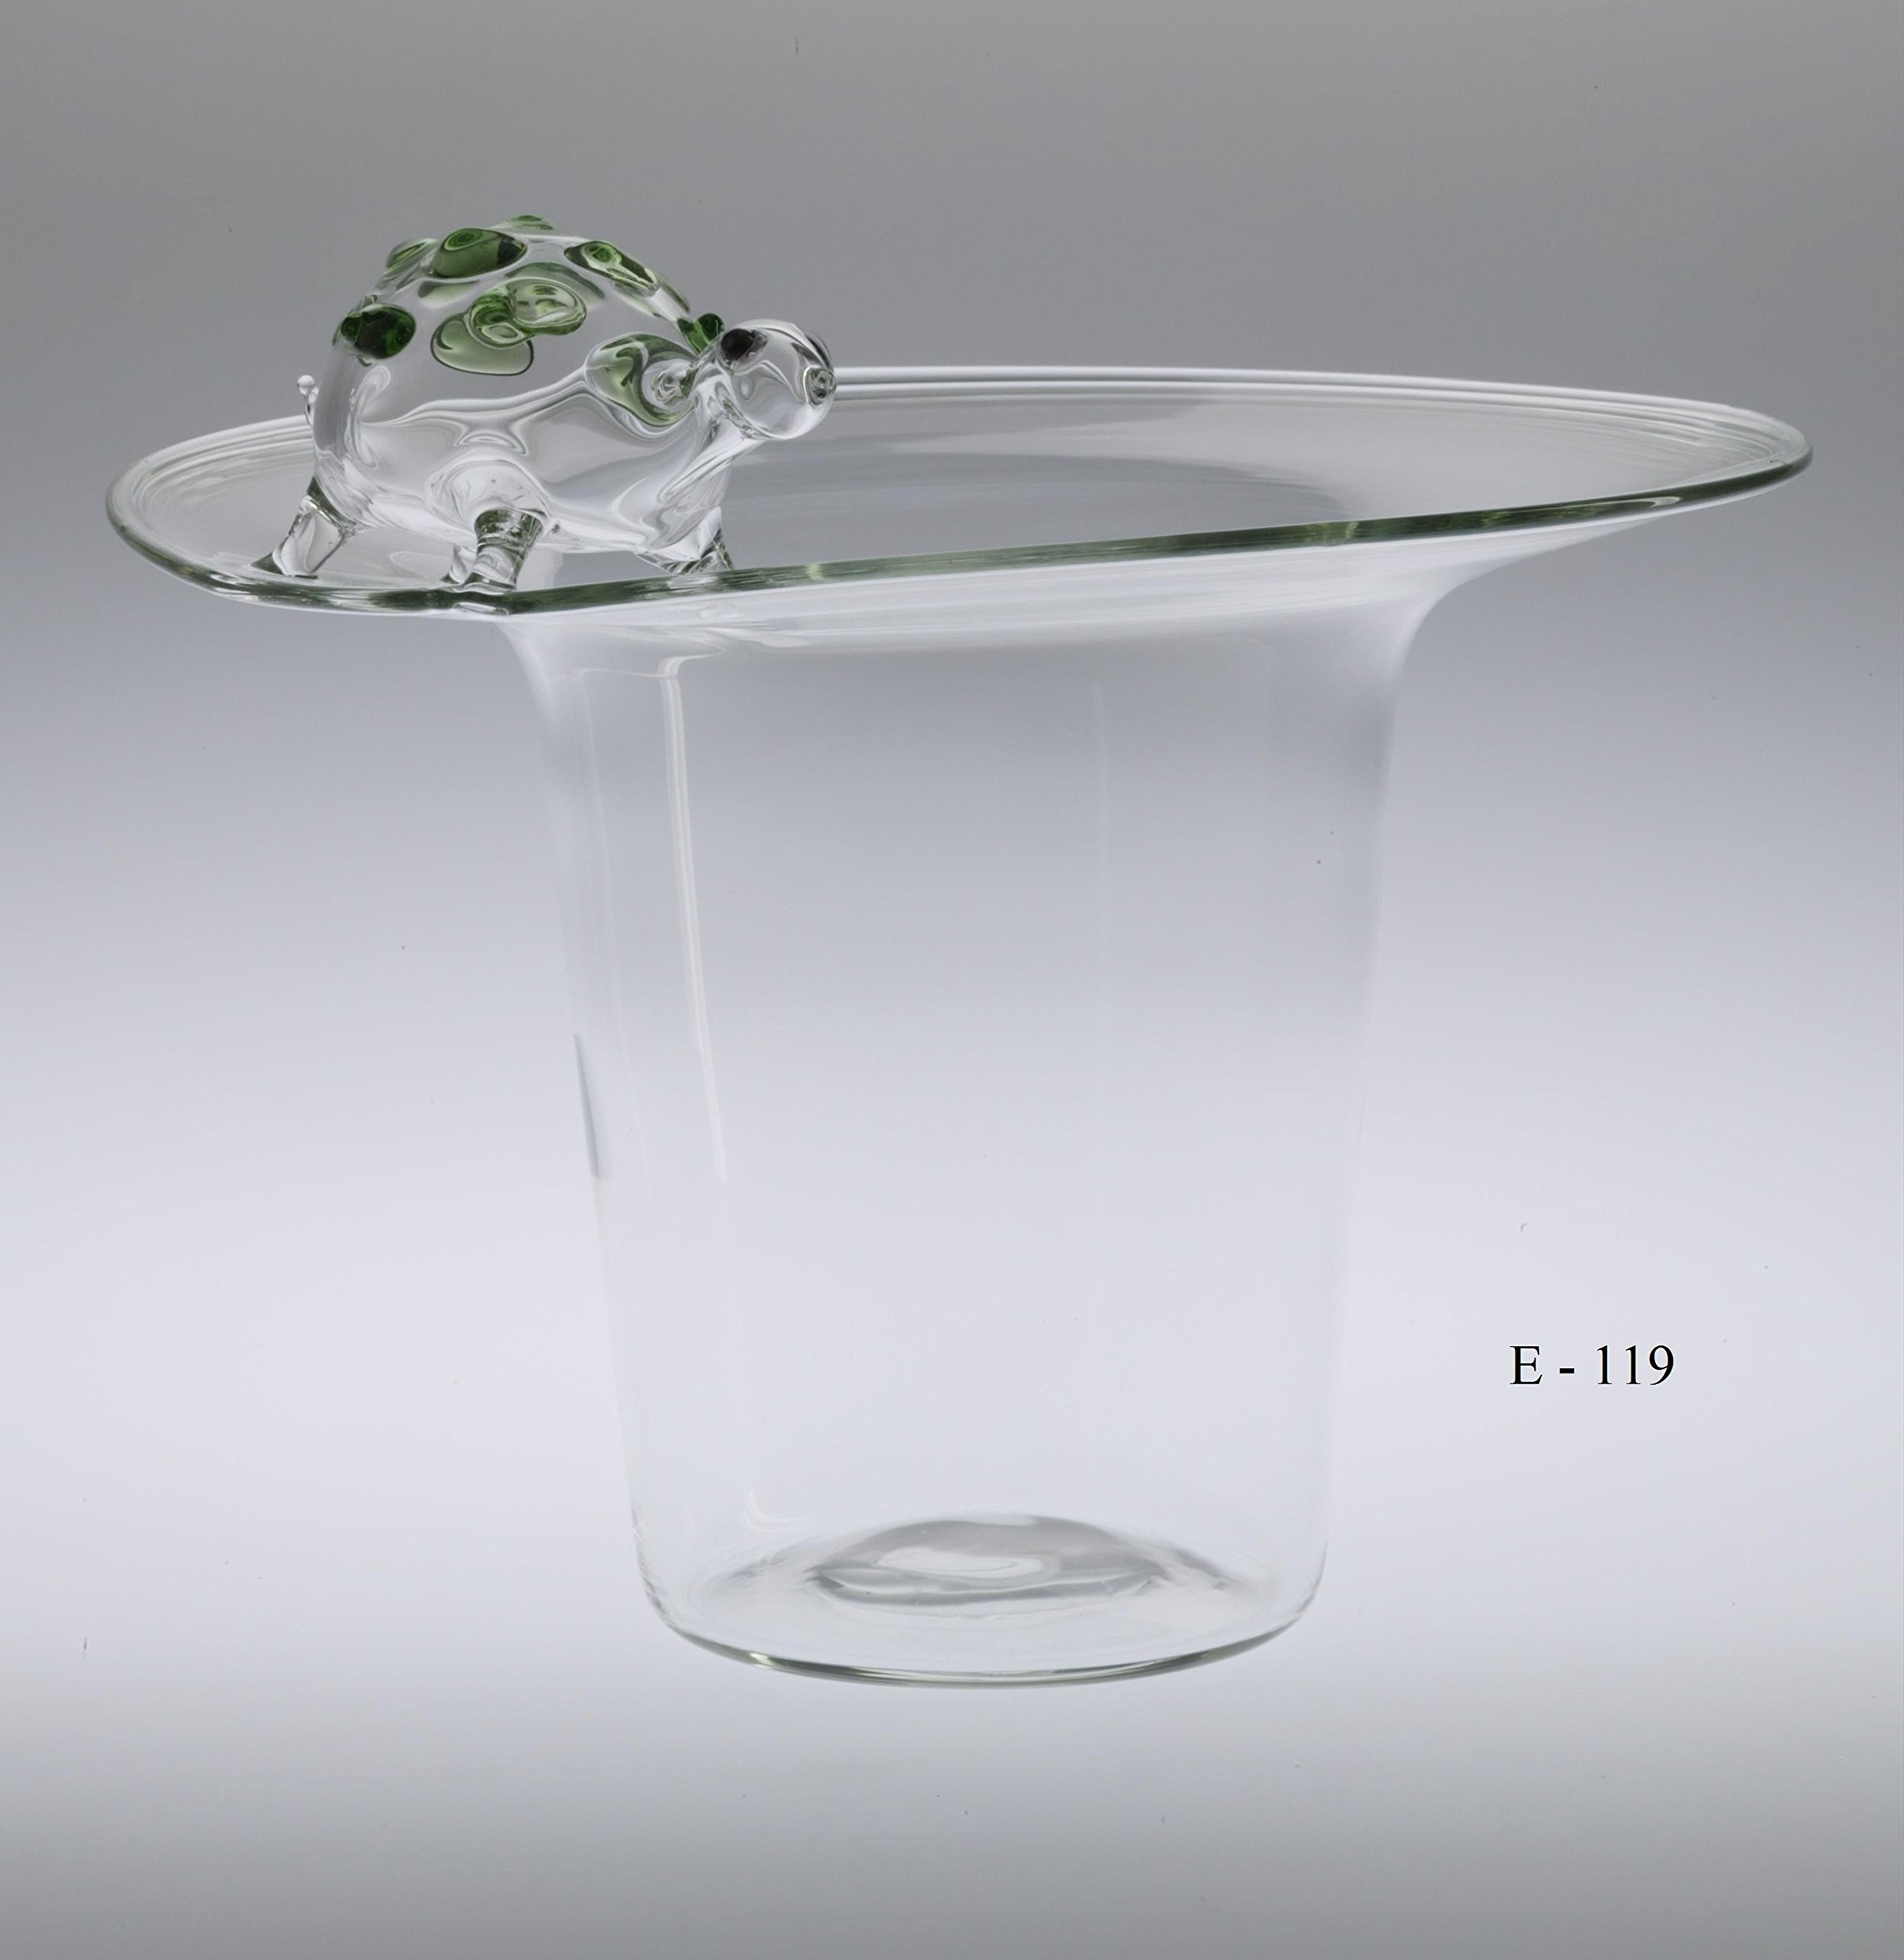 Massimo Lunardon - Unique Bowl for Pinzimonio salad. Hand-blown unique art glass